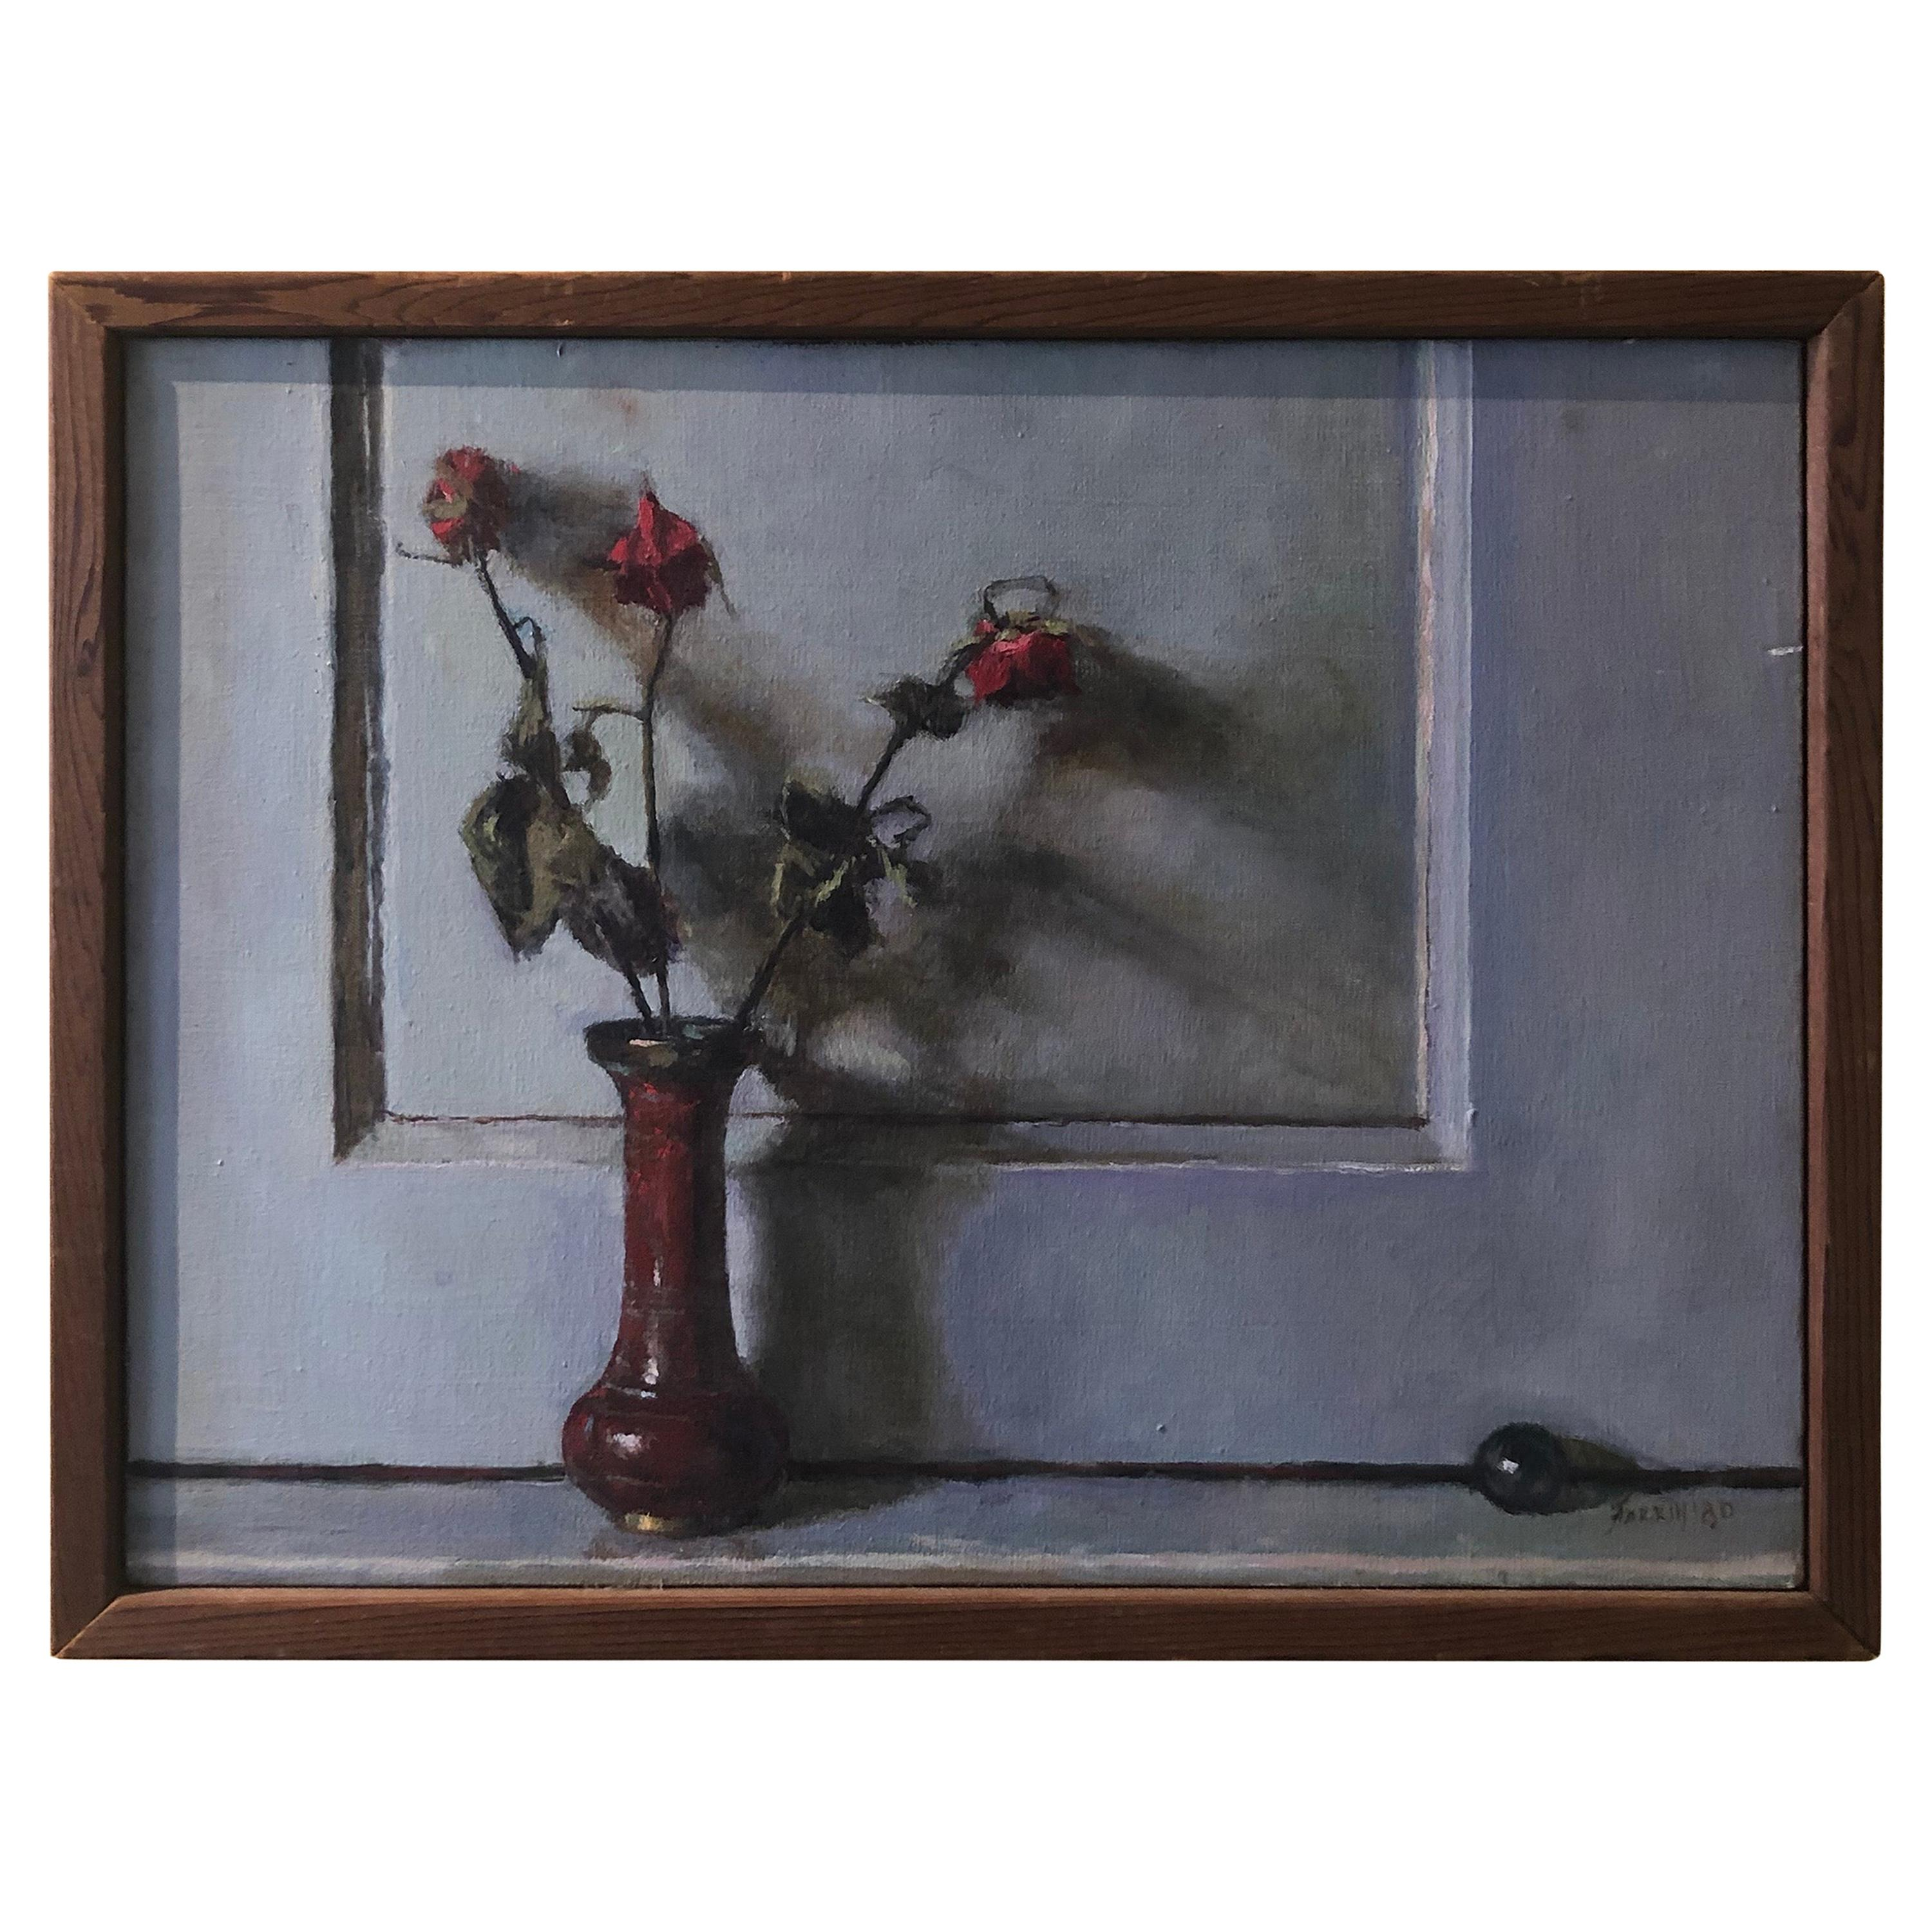 Original Oil on Canvas Painting by Listed American Artist Doug Ferrin